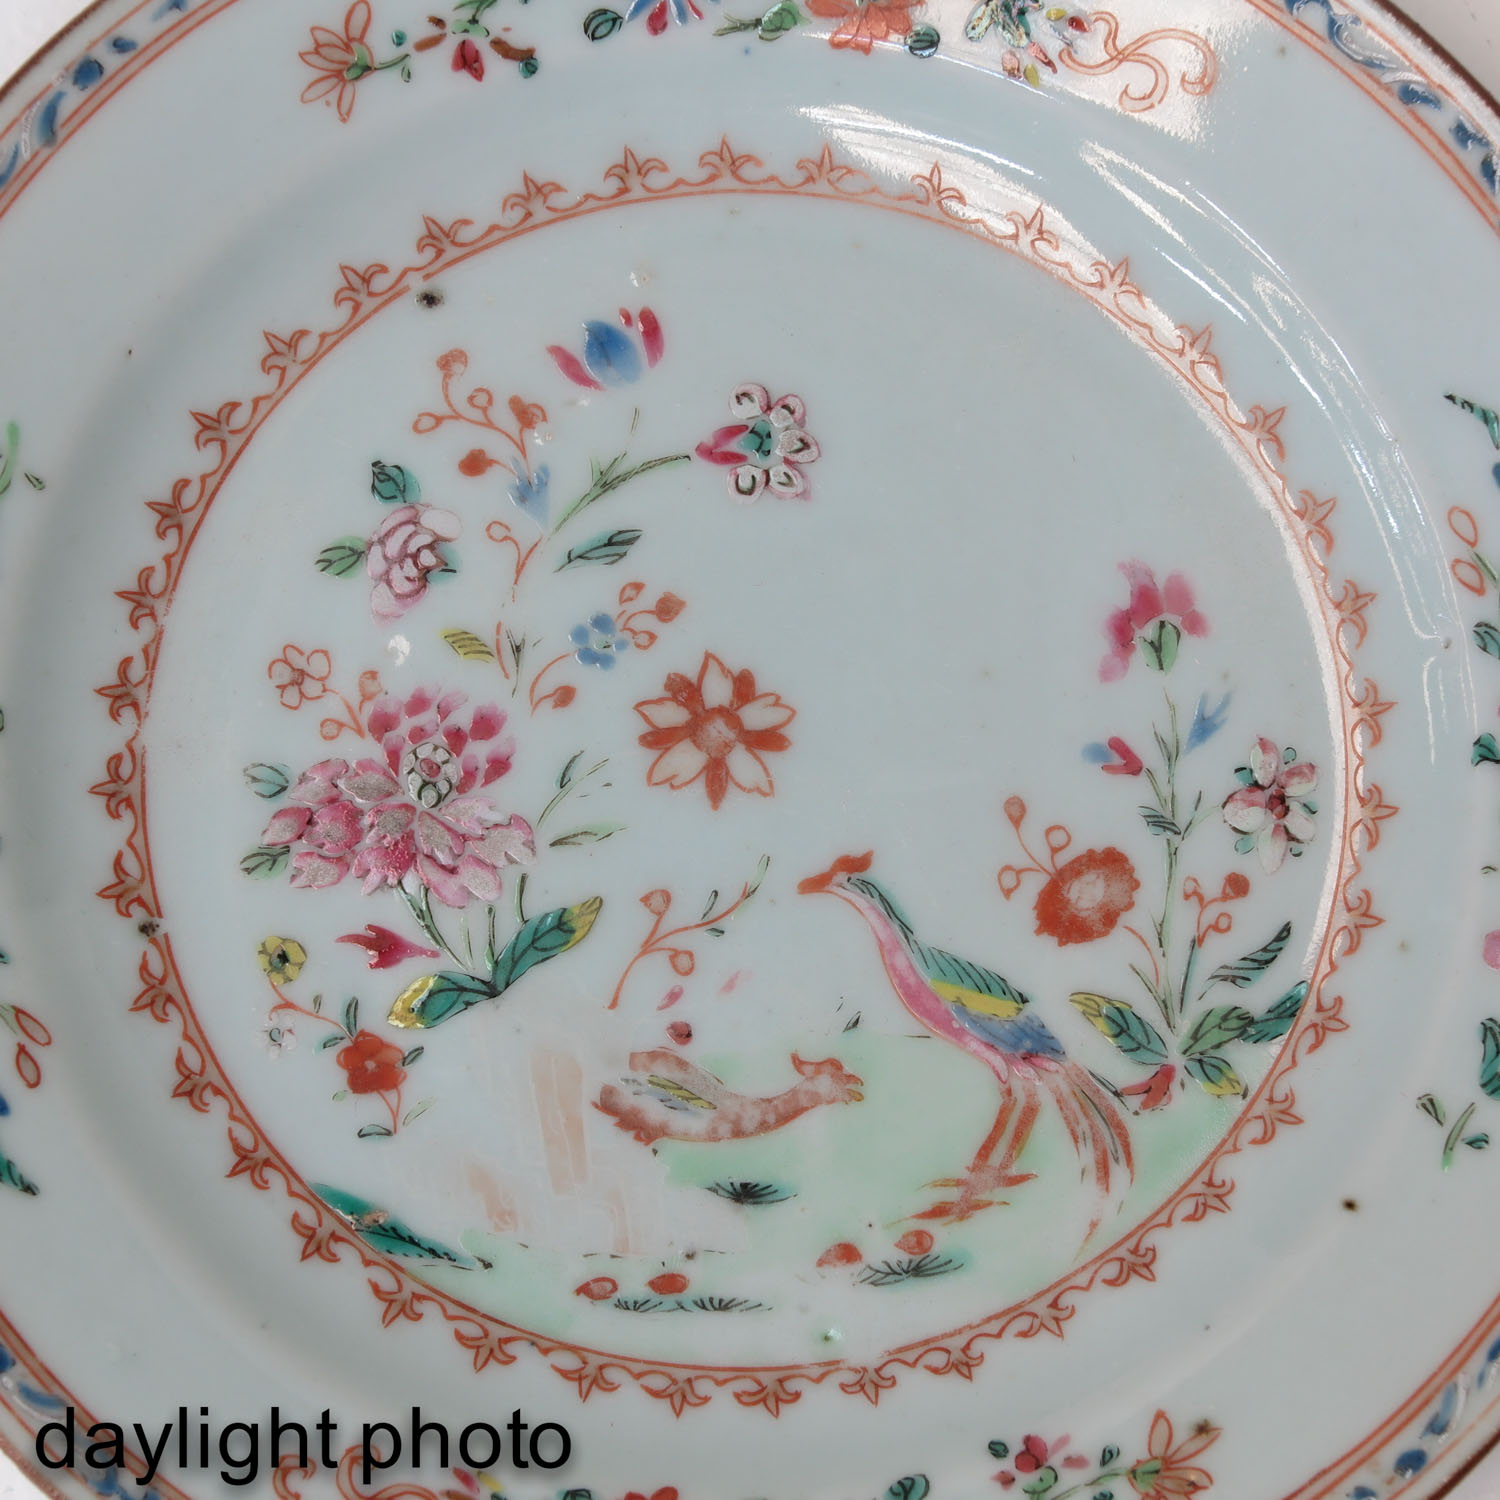 A Series of 4 Famille Rose Plates - Image 9 of 10